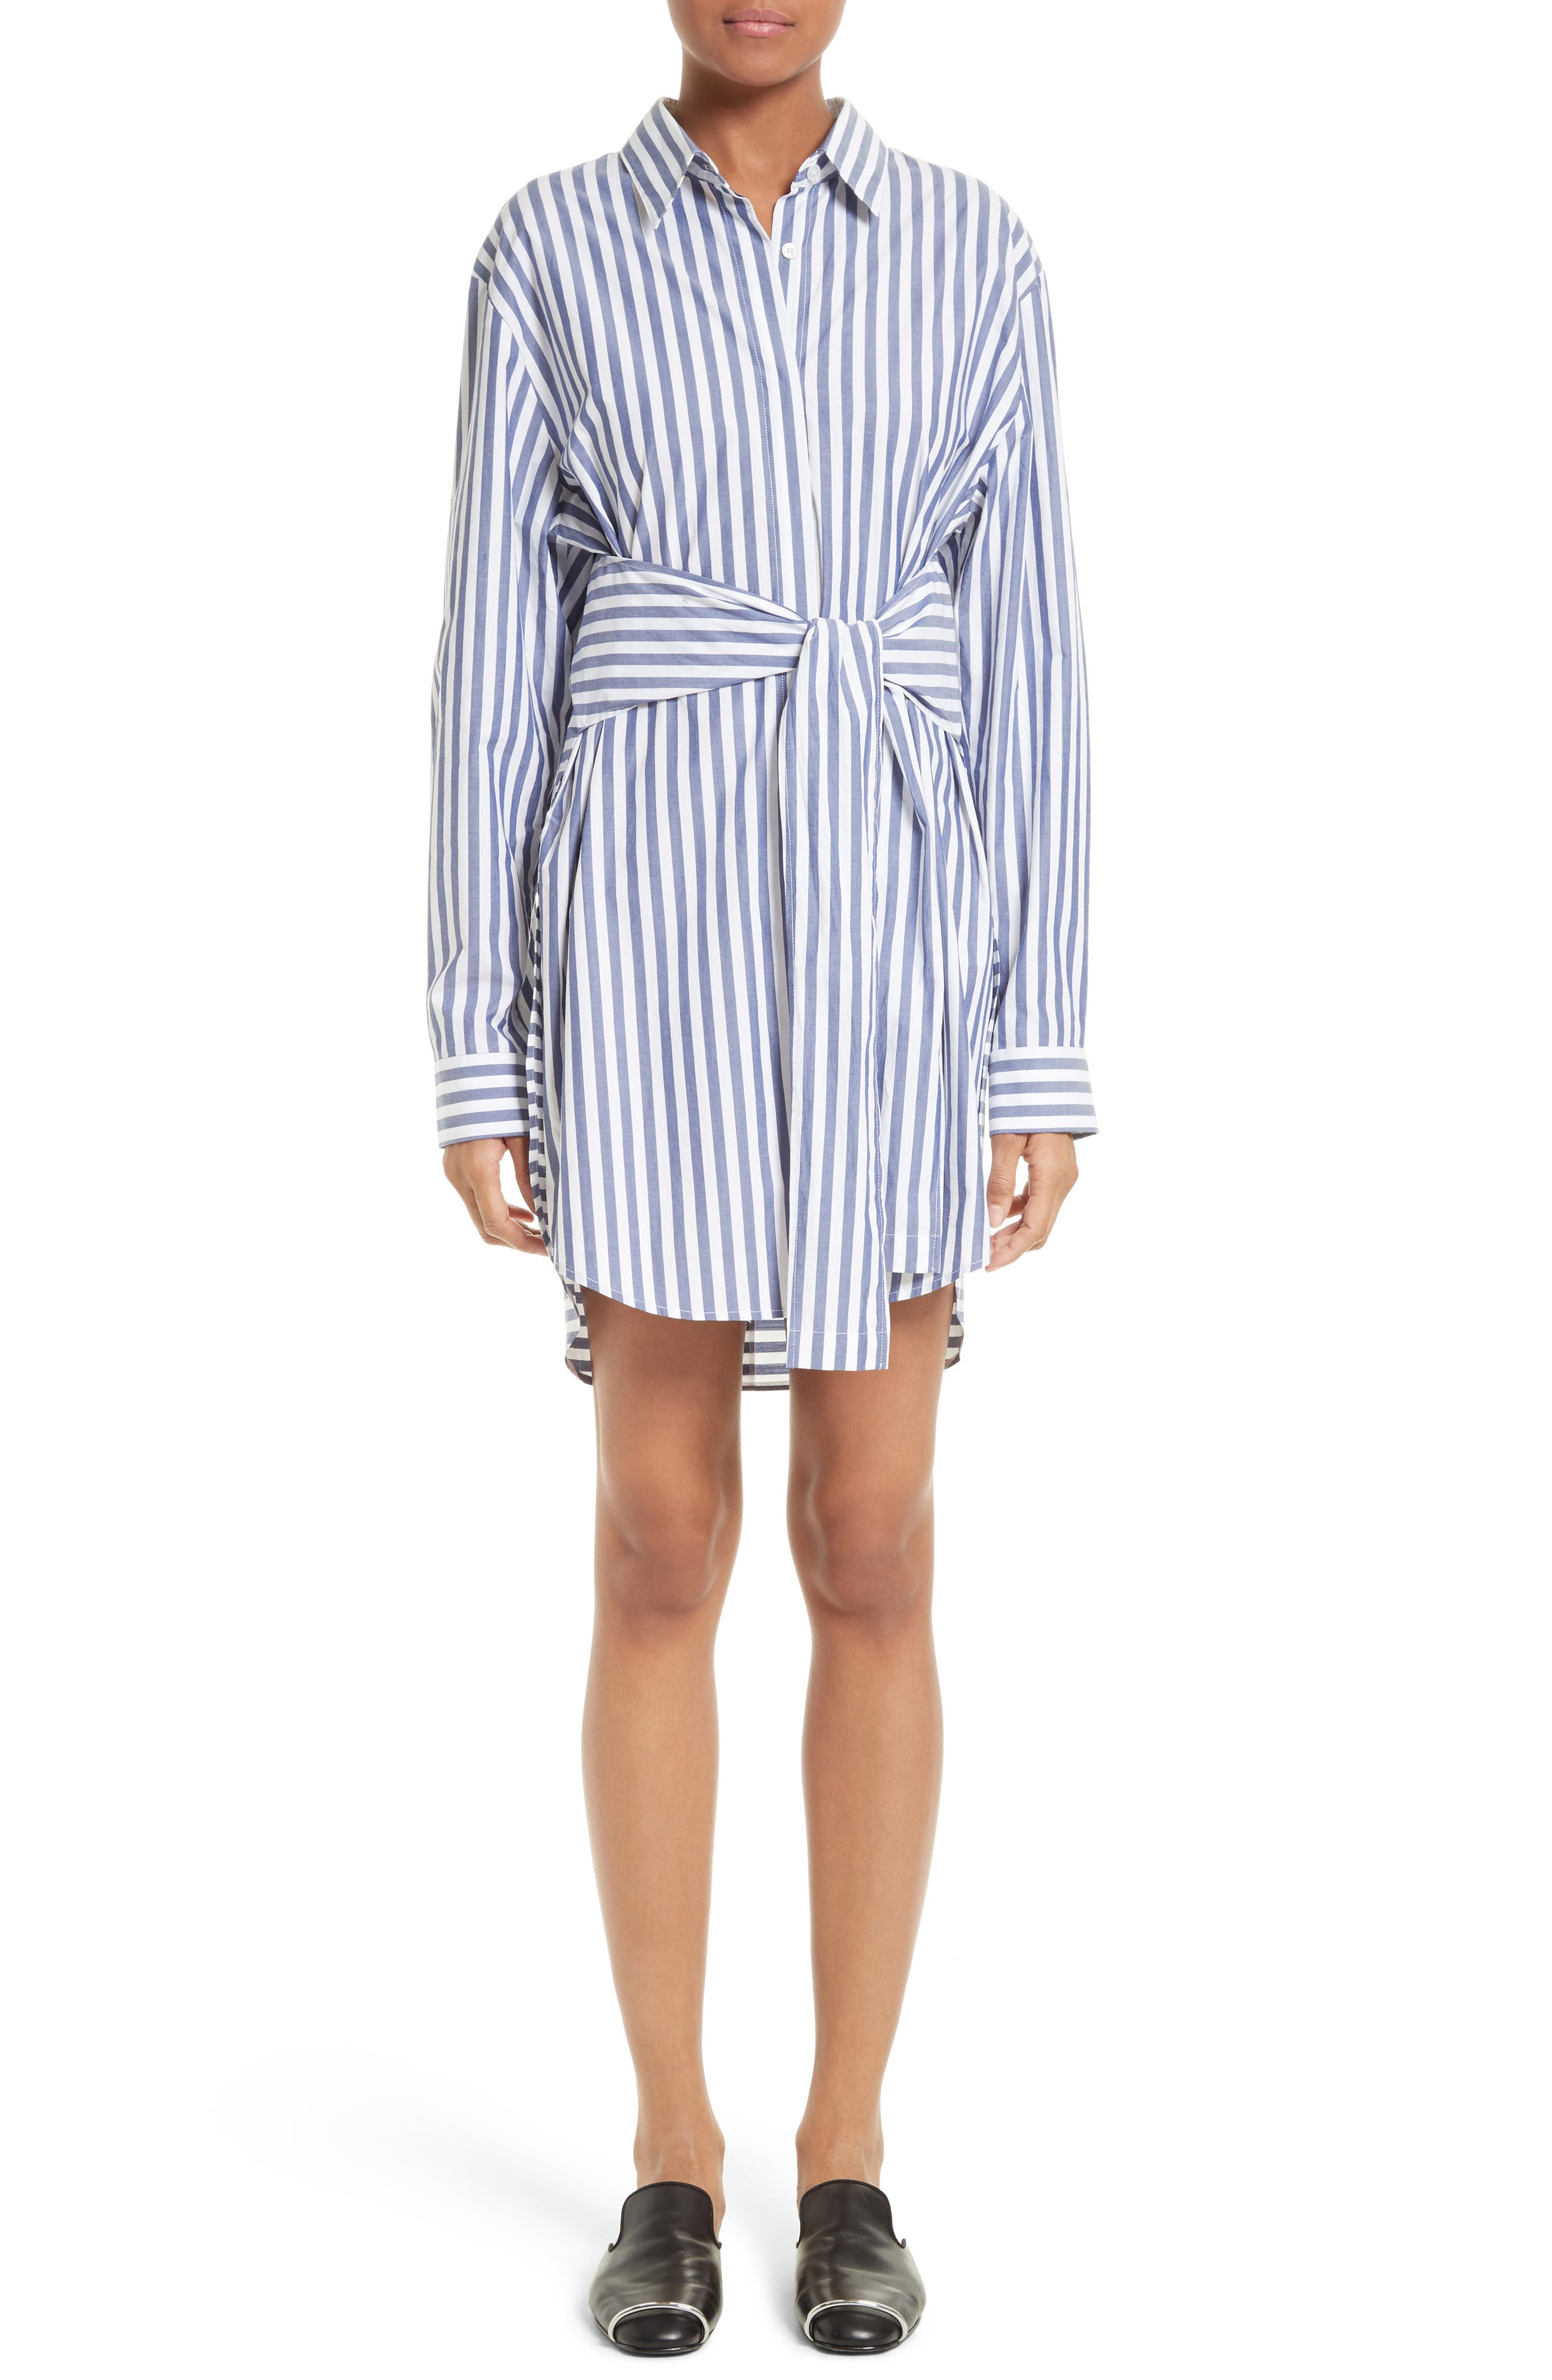 Alternate Image 1 Selected - T by Alexander Wang Stripe Tie Front Shirtdress